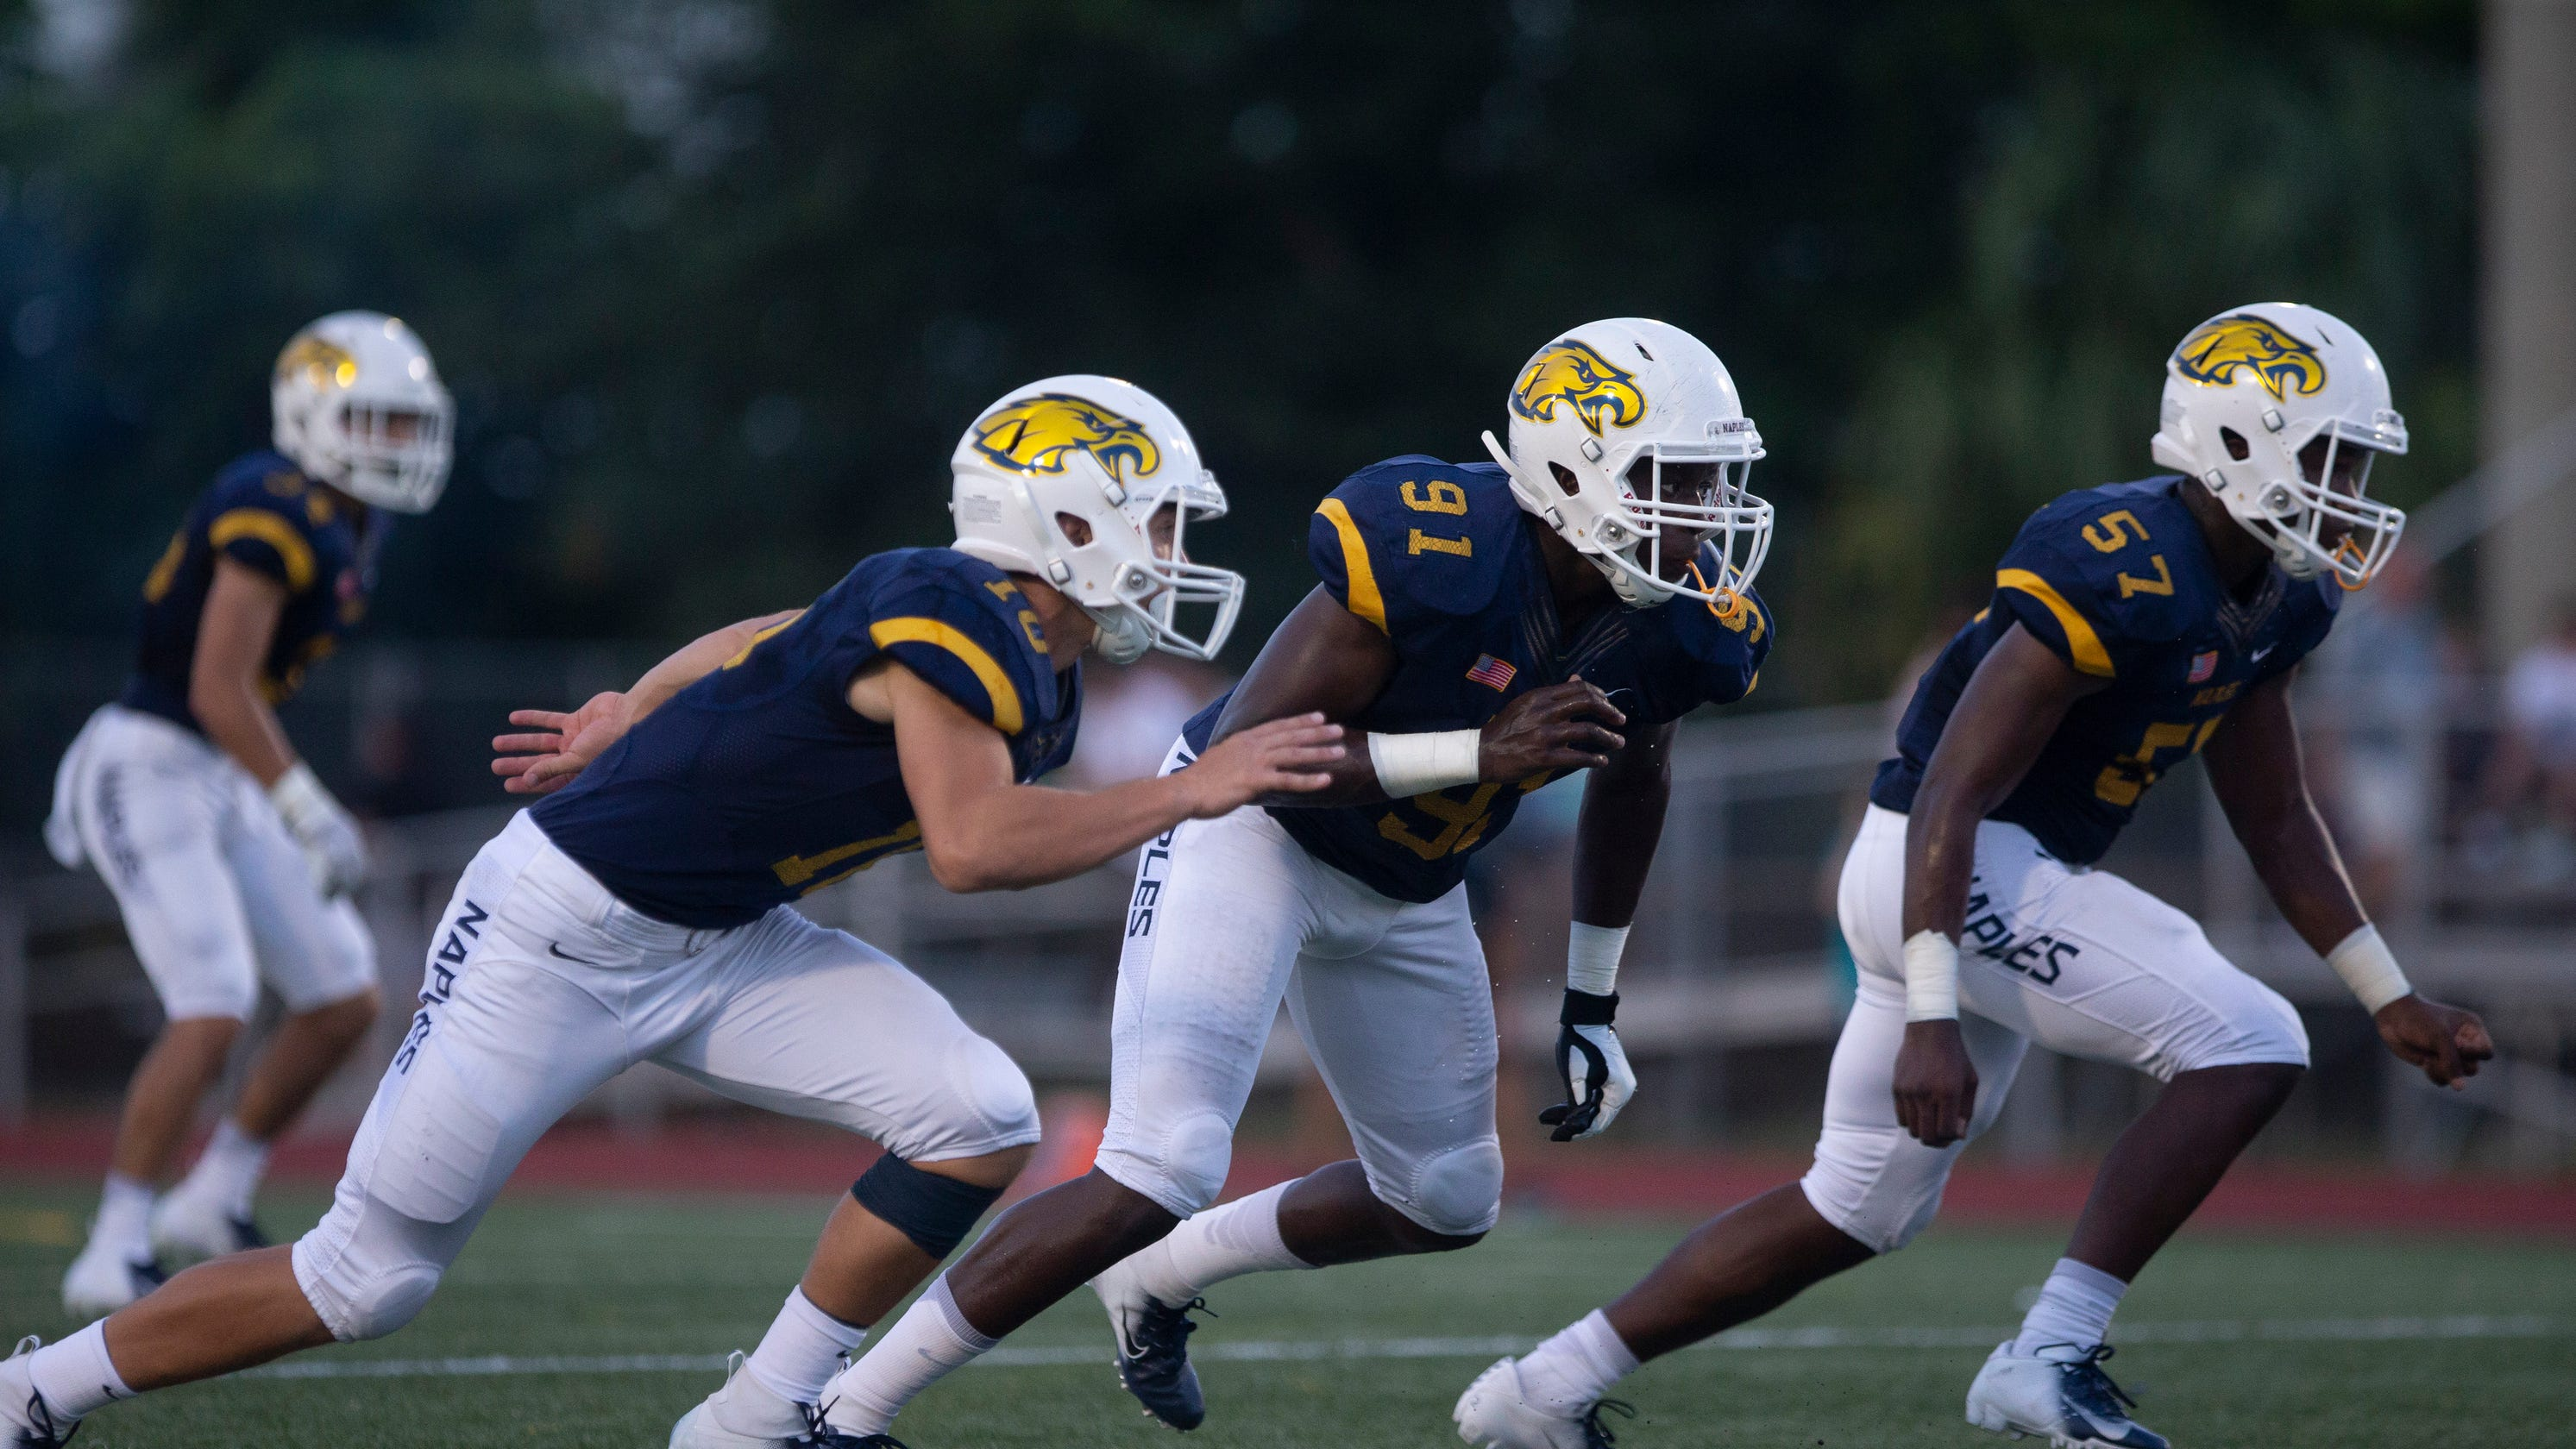 Naples High football preview 2019